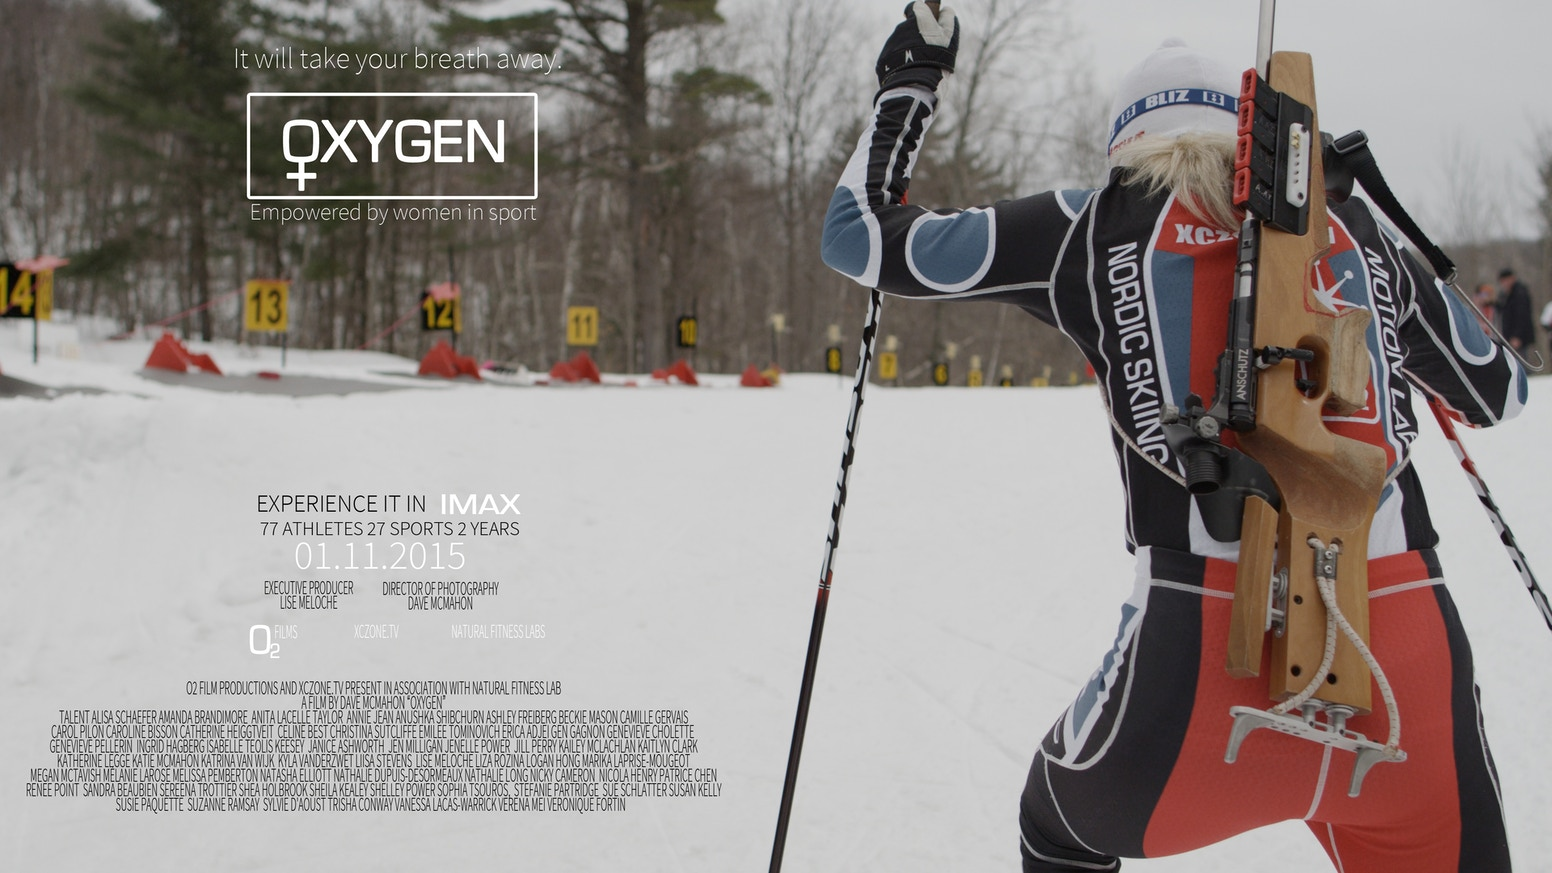 Oxygen is a beautifully choreographed film about outdoor sport empowered by women and breath taking IMAX cinematography.